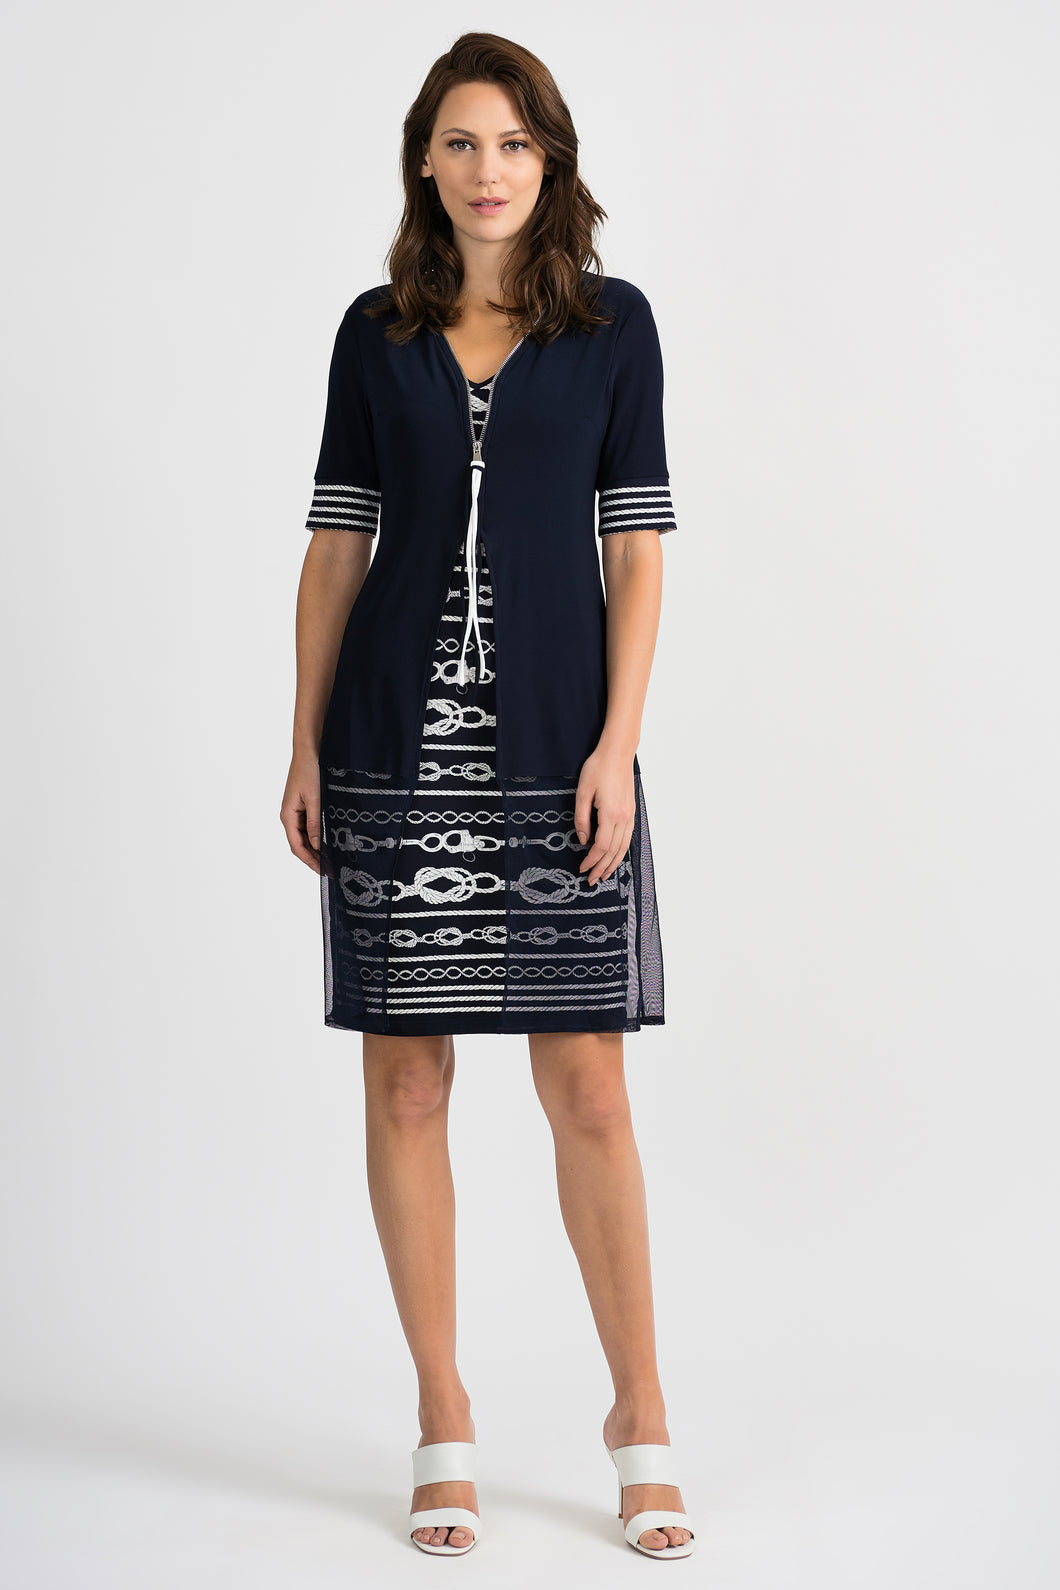 Joseph Ribkoff Short Sleeve Dress